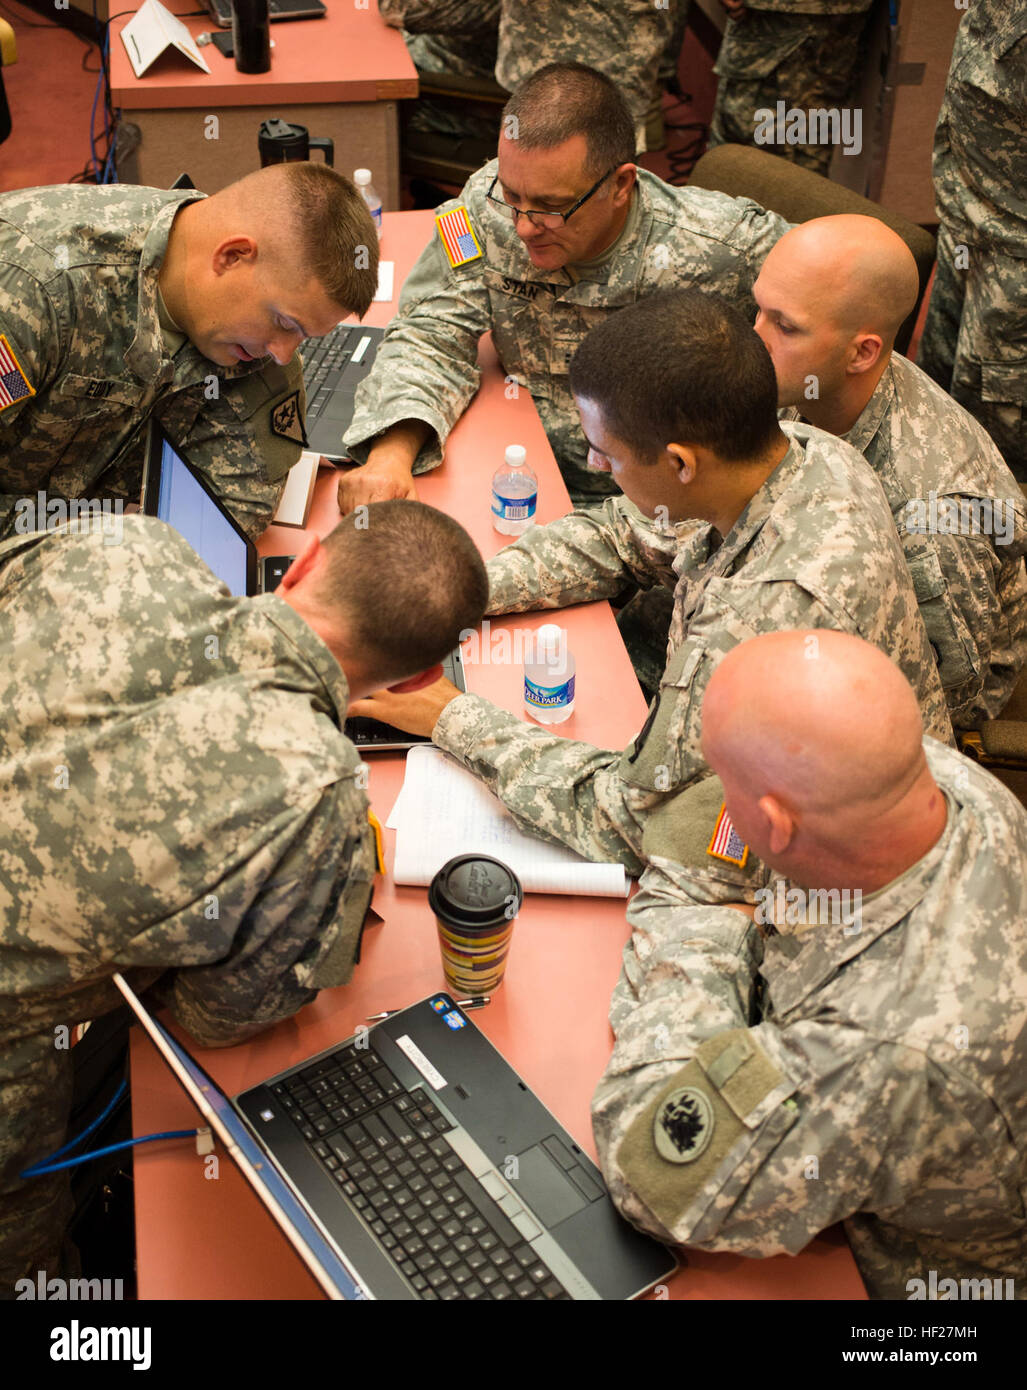 Gathering around a single laptop, Team National Guard maps out a plan to win during the U.S. Army's 'Cyber Center Stock Photo